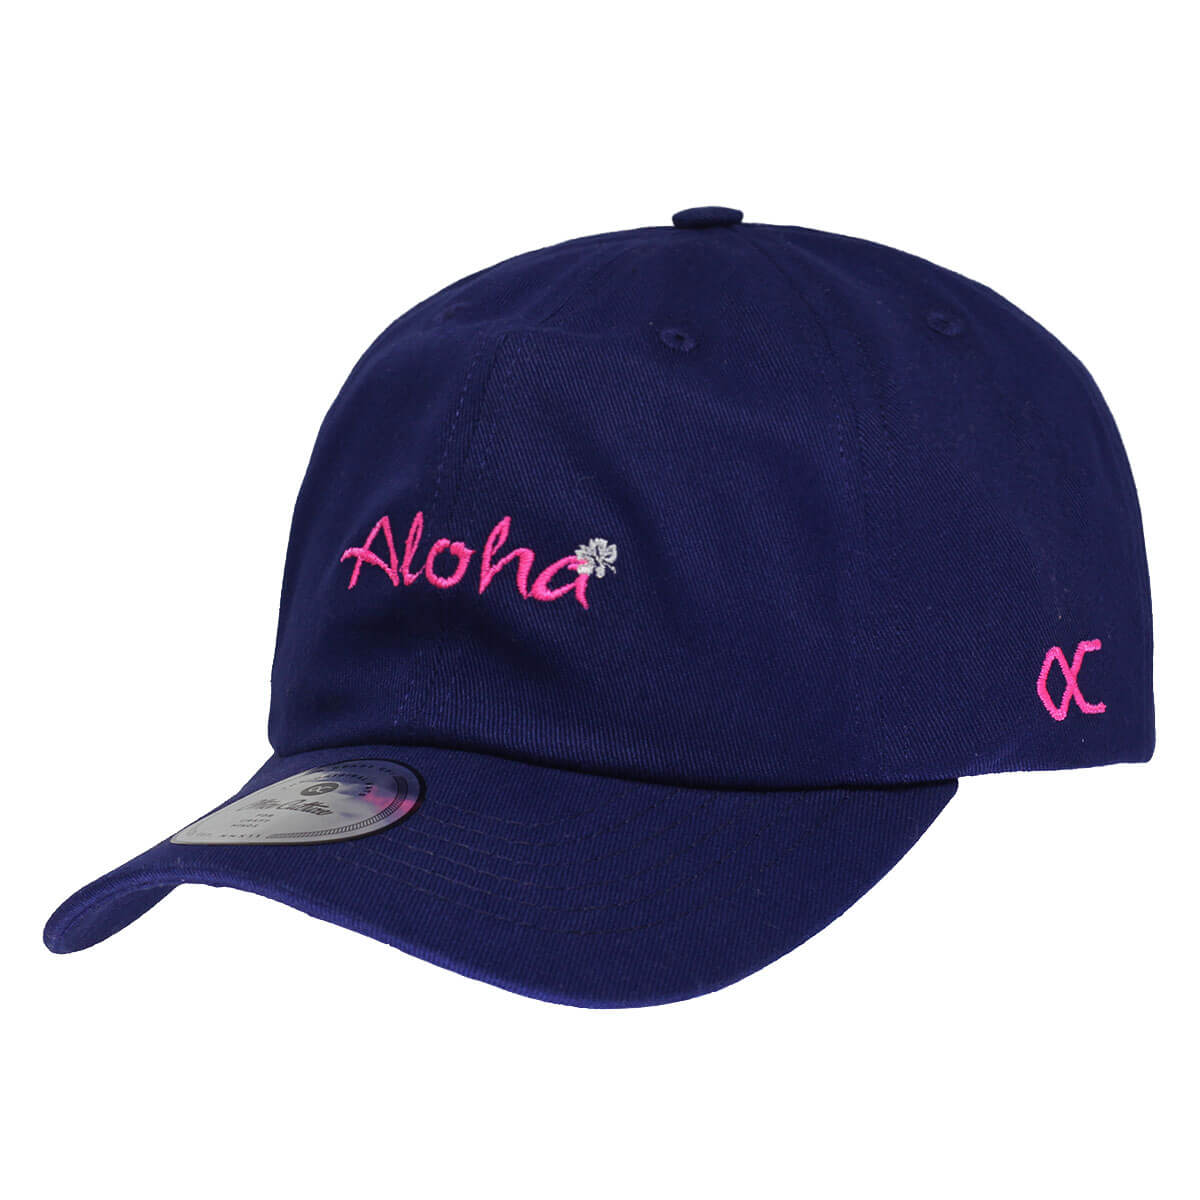 Boné Other Culture Aba Curva Strapback Aloha [DAD HATS]